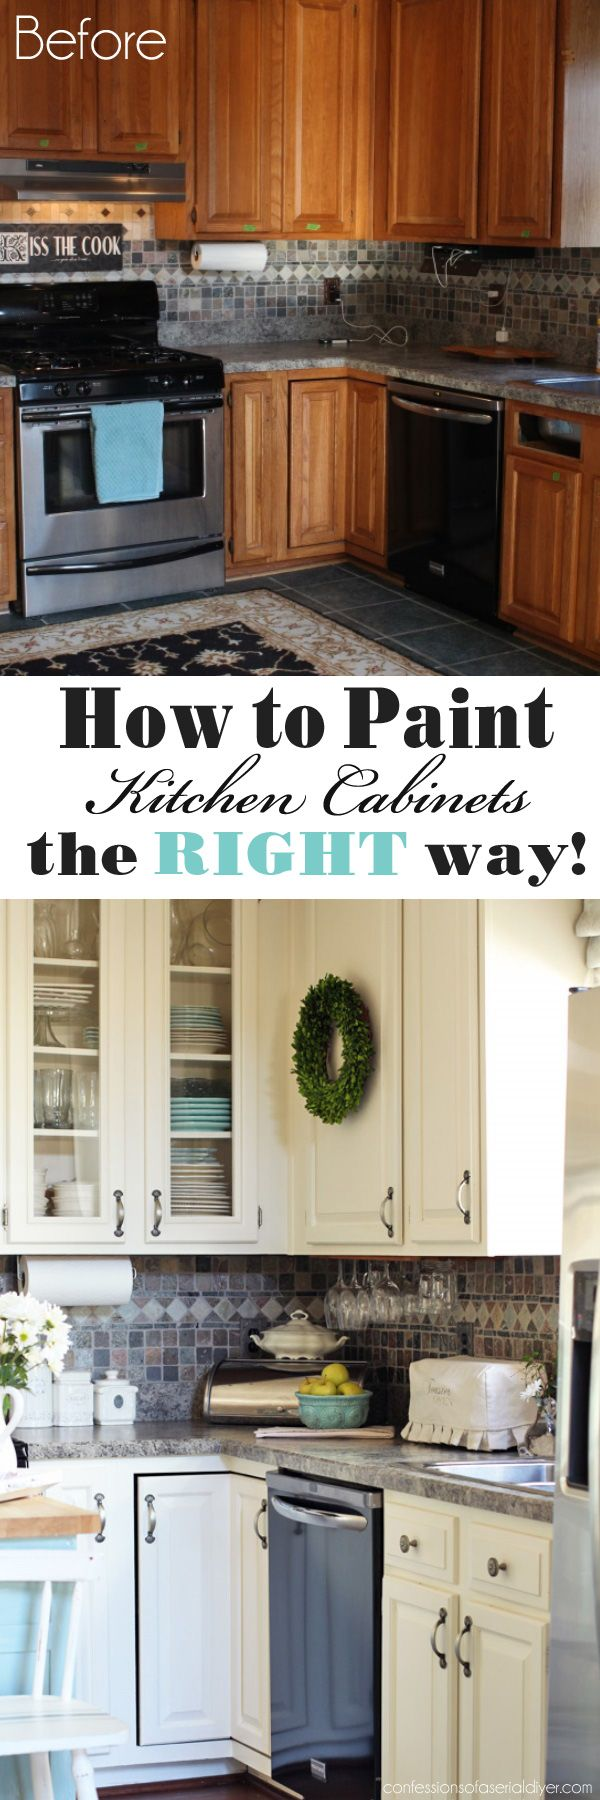 Best 25+ Painted kitchen cabinets ideas on Pinterest | Redoing ...